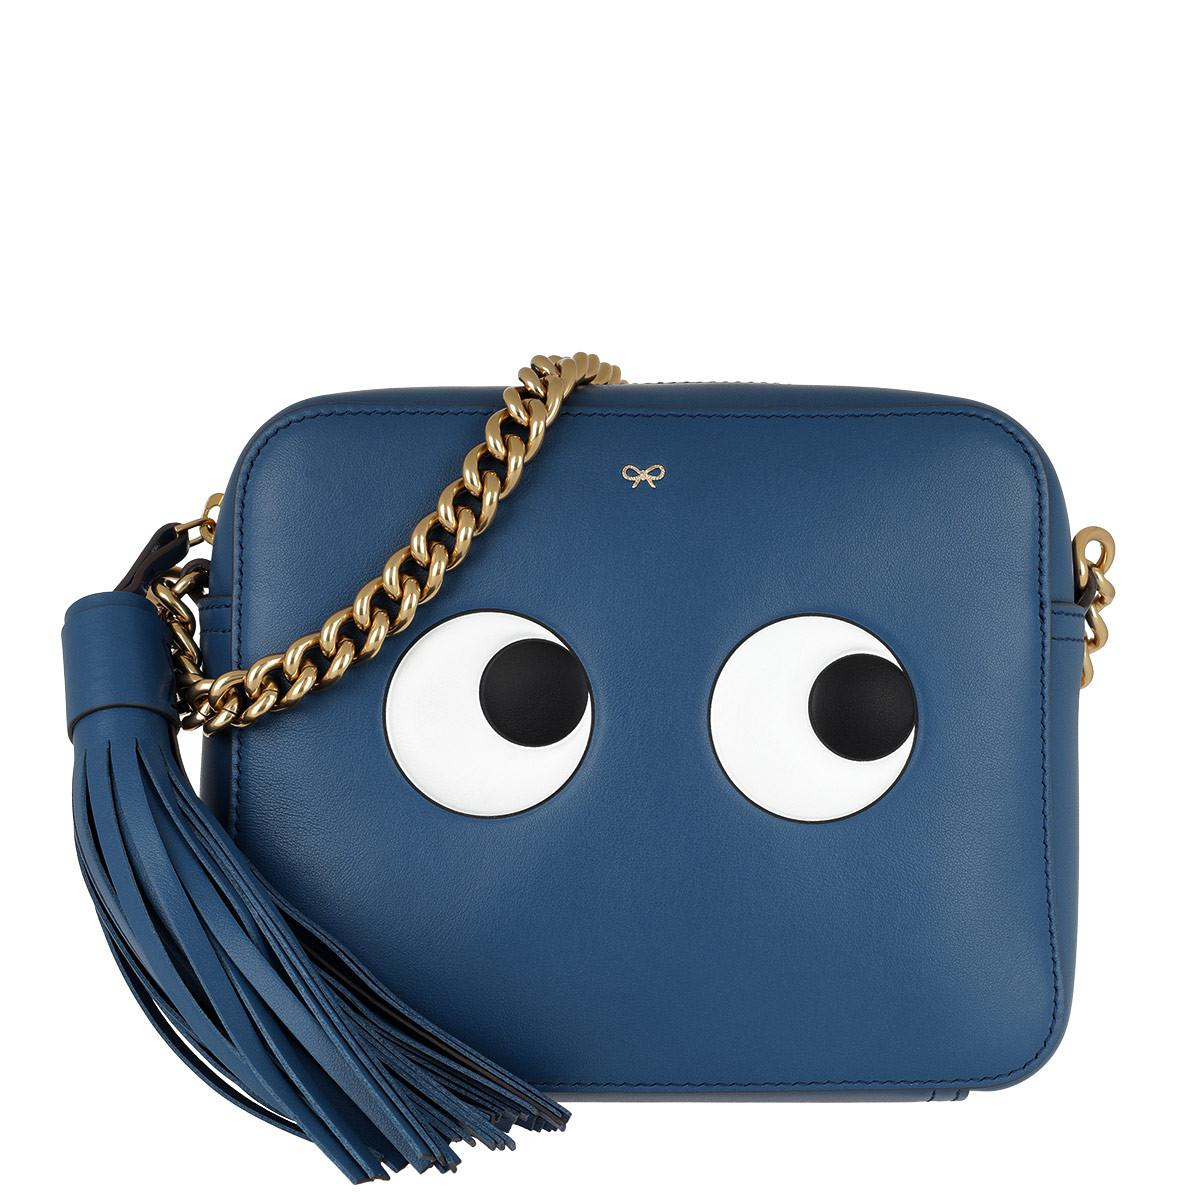 Anya Hindmarch Eyes Right Circus crossbody bag Safe Payment 100% Authentic For Sale Pay With Paypal For Sale mvJNLJ